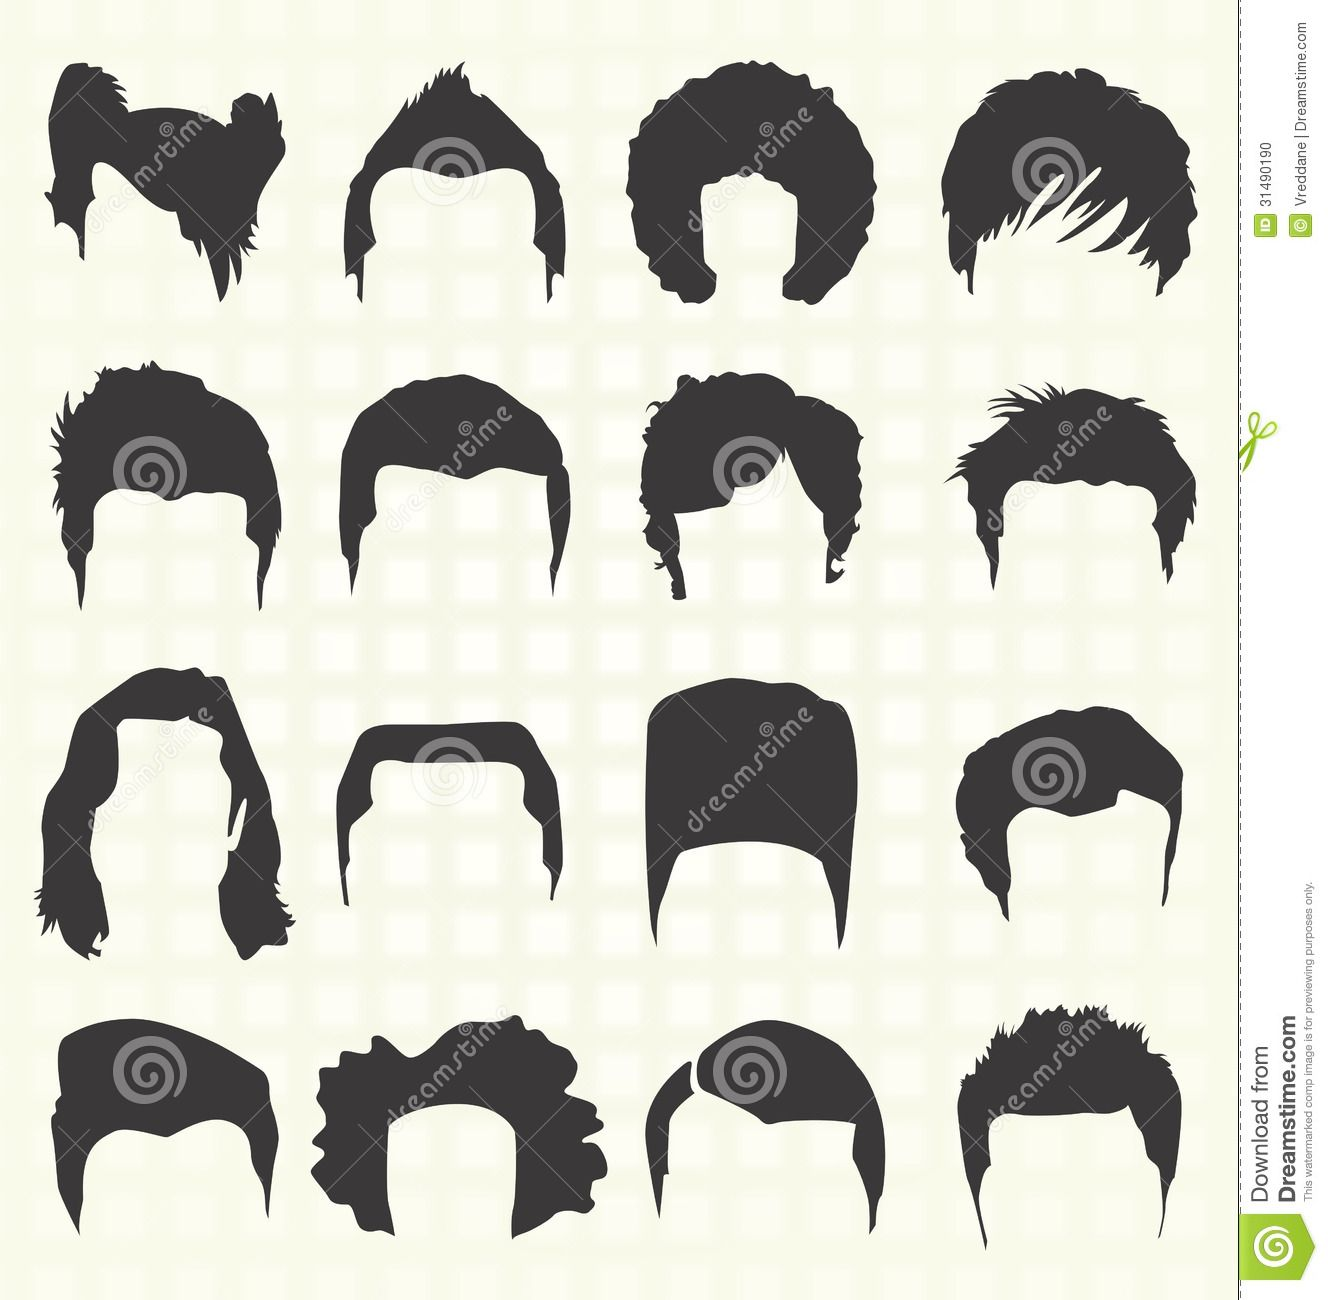 guy curly hair wig clipart.